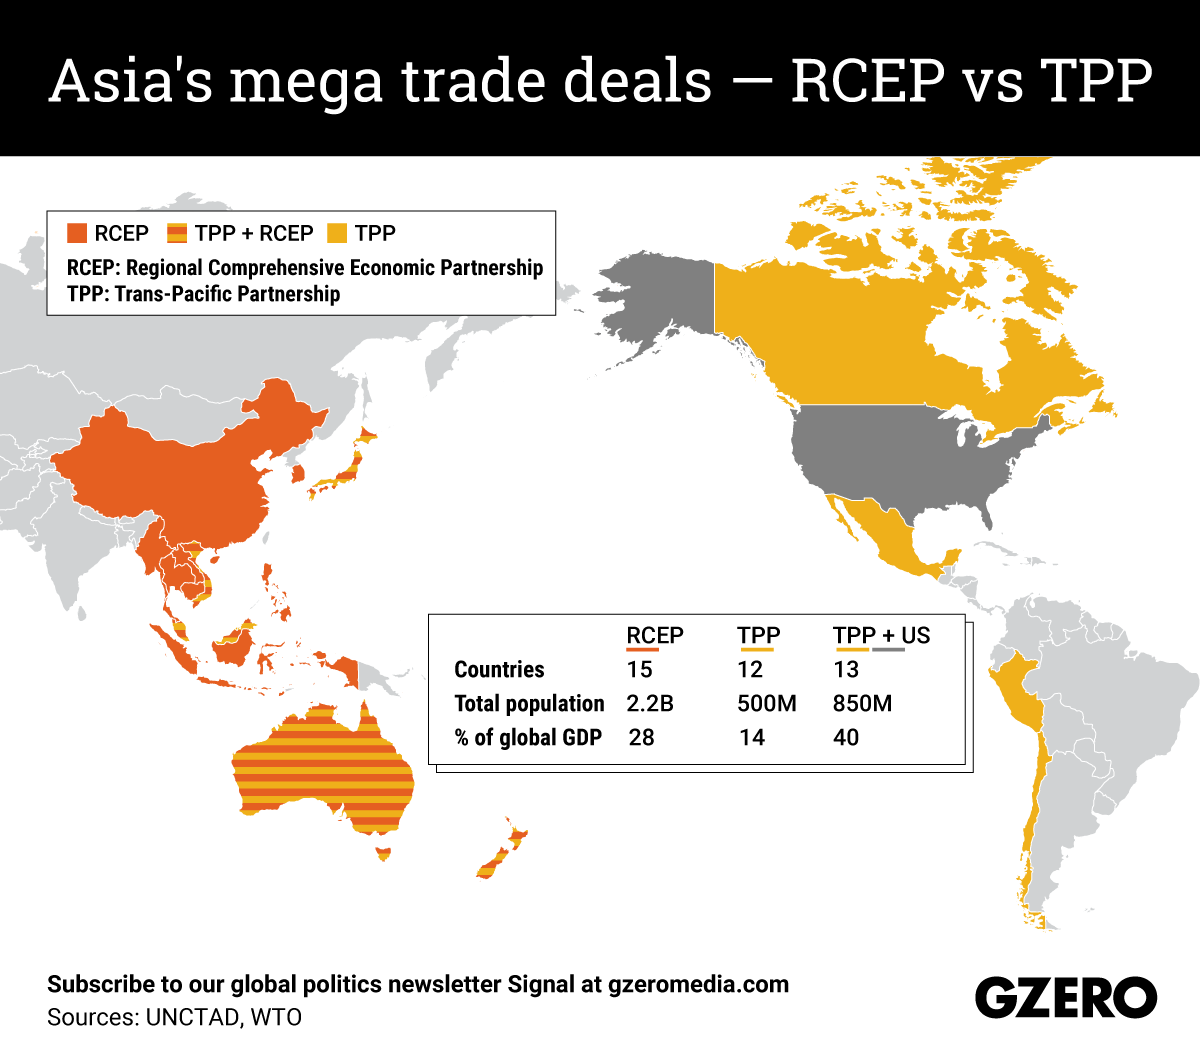 The Graphic Truth: Asia's mega trade deals — RCEP vs TPP